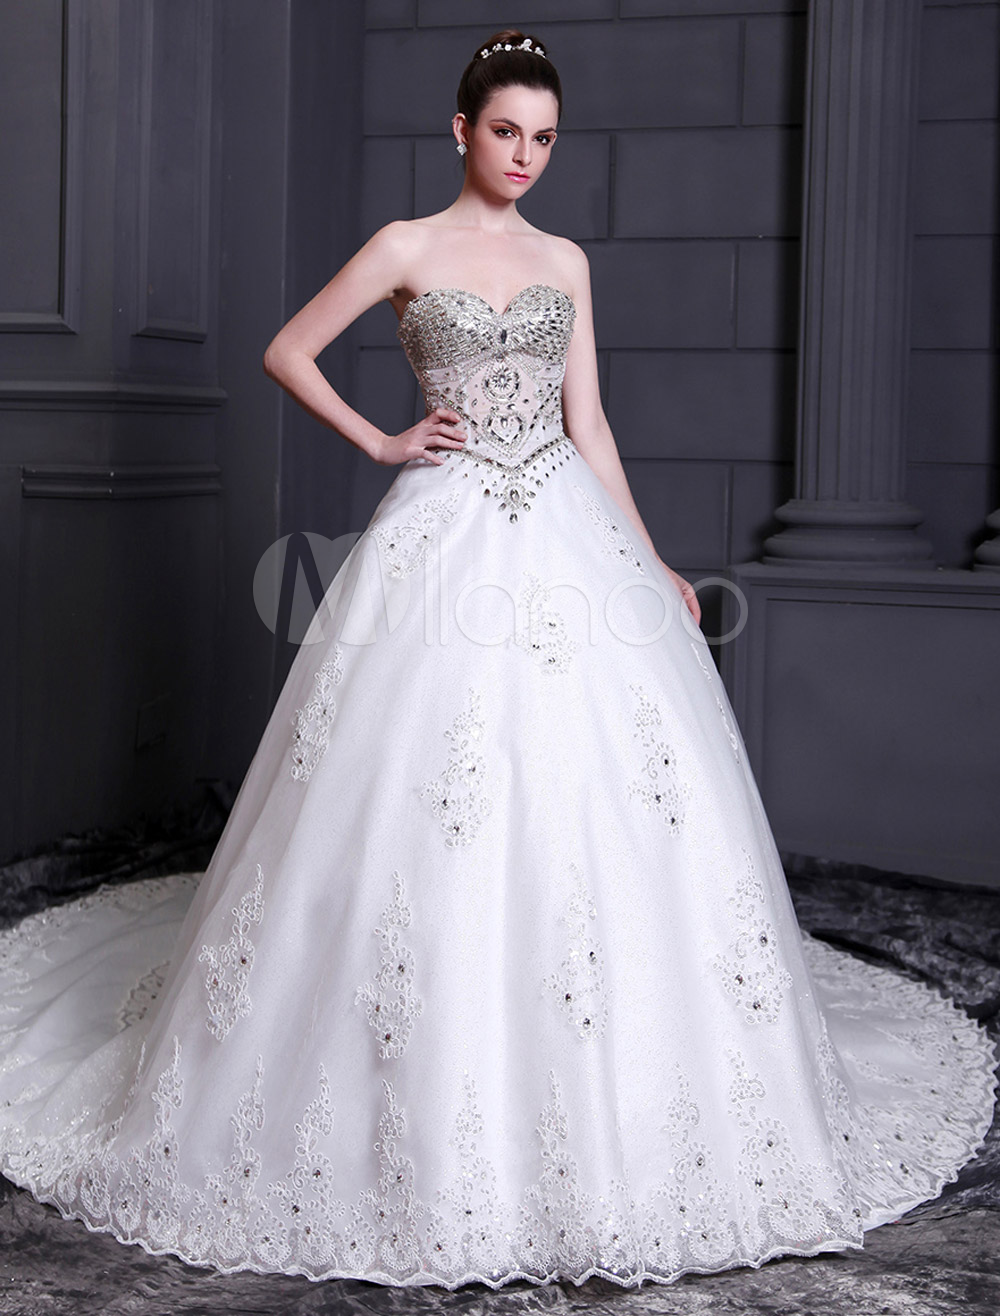 Cathedral Train Sweetheart A-line Sequin White Bridal Wedding Gown